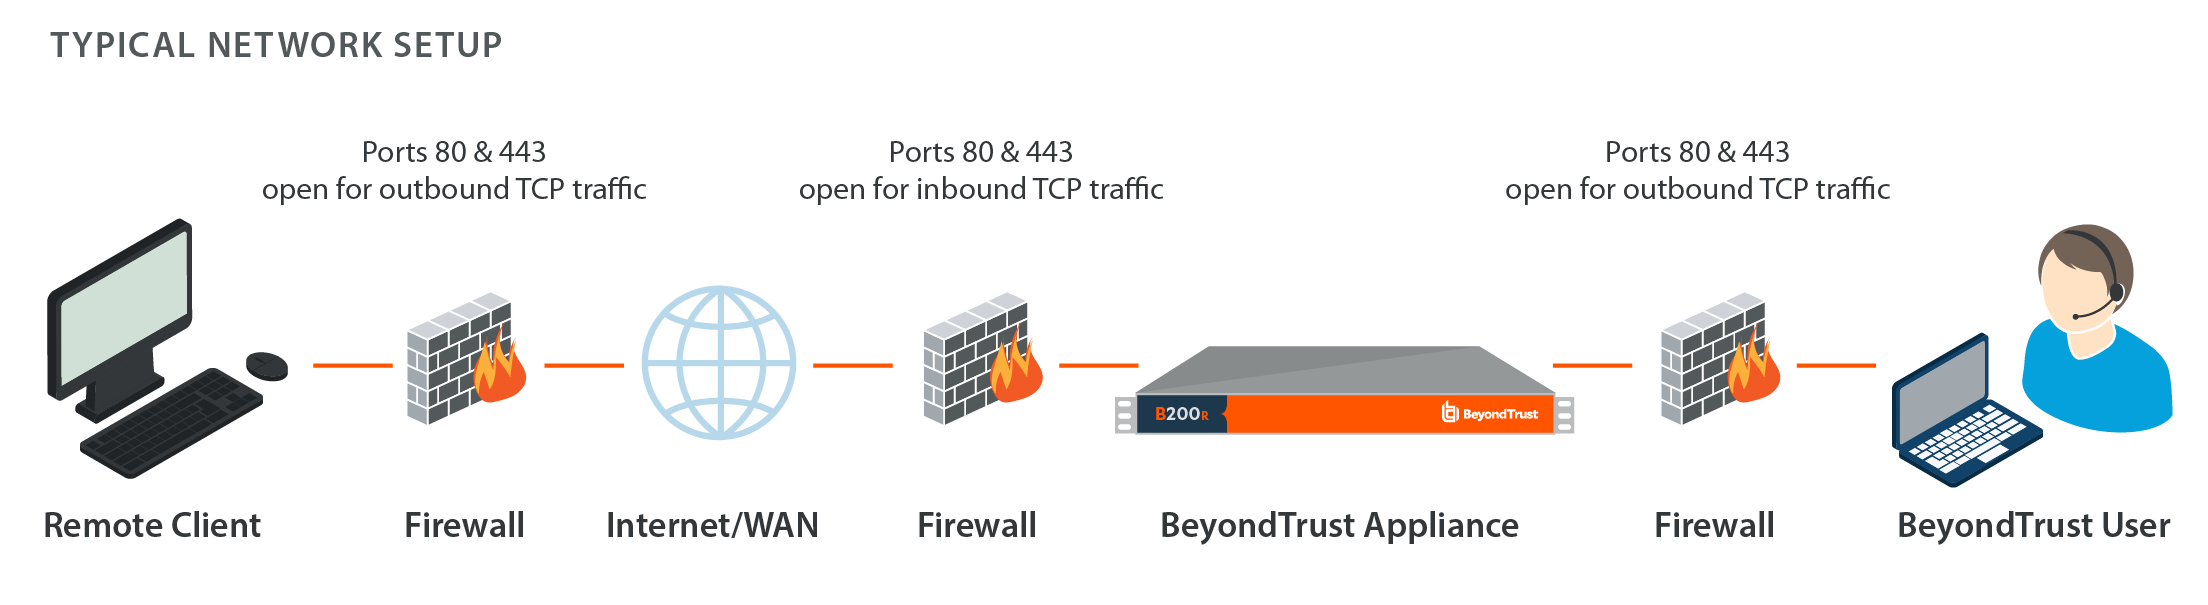 Ports, Firewalls, and Proxies Configuration for BeyondTrust